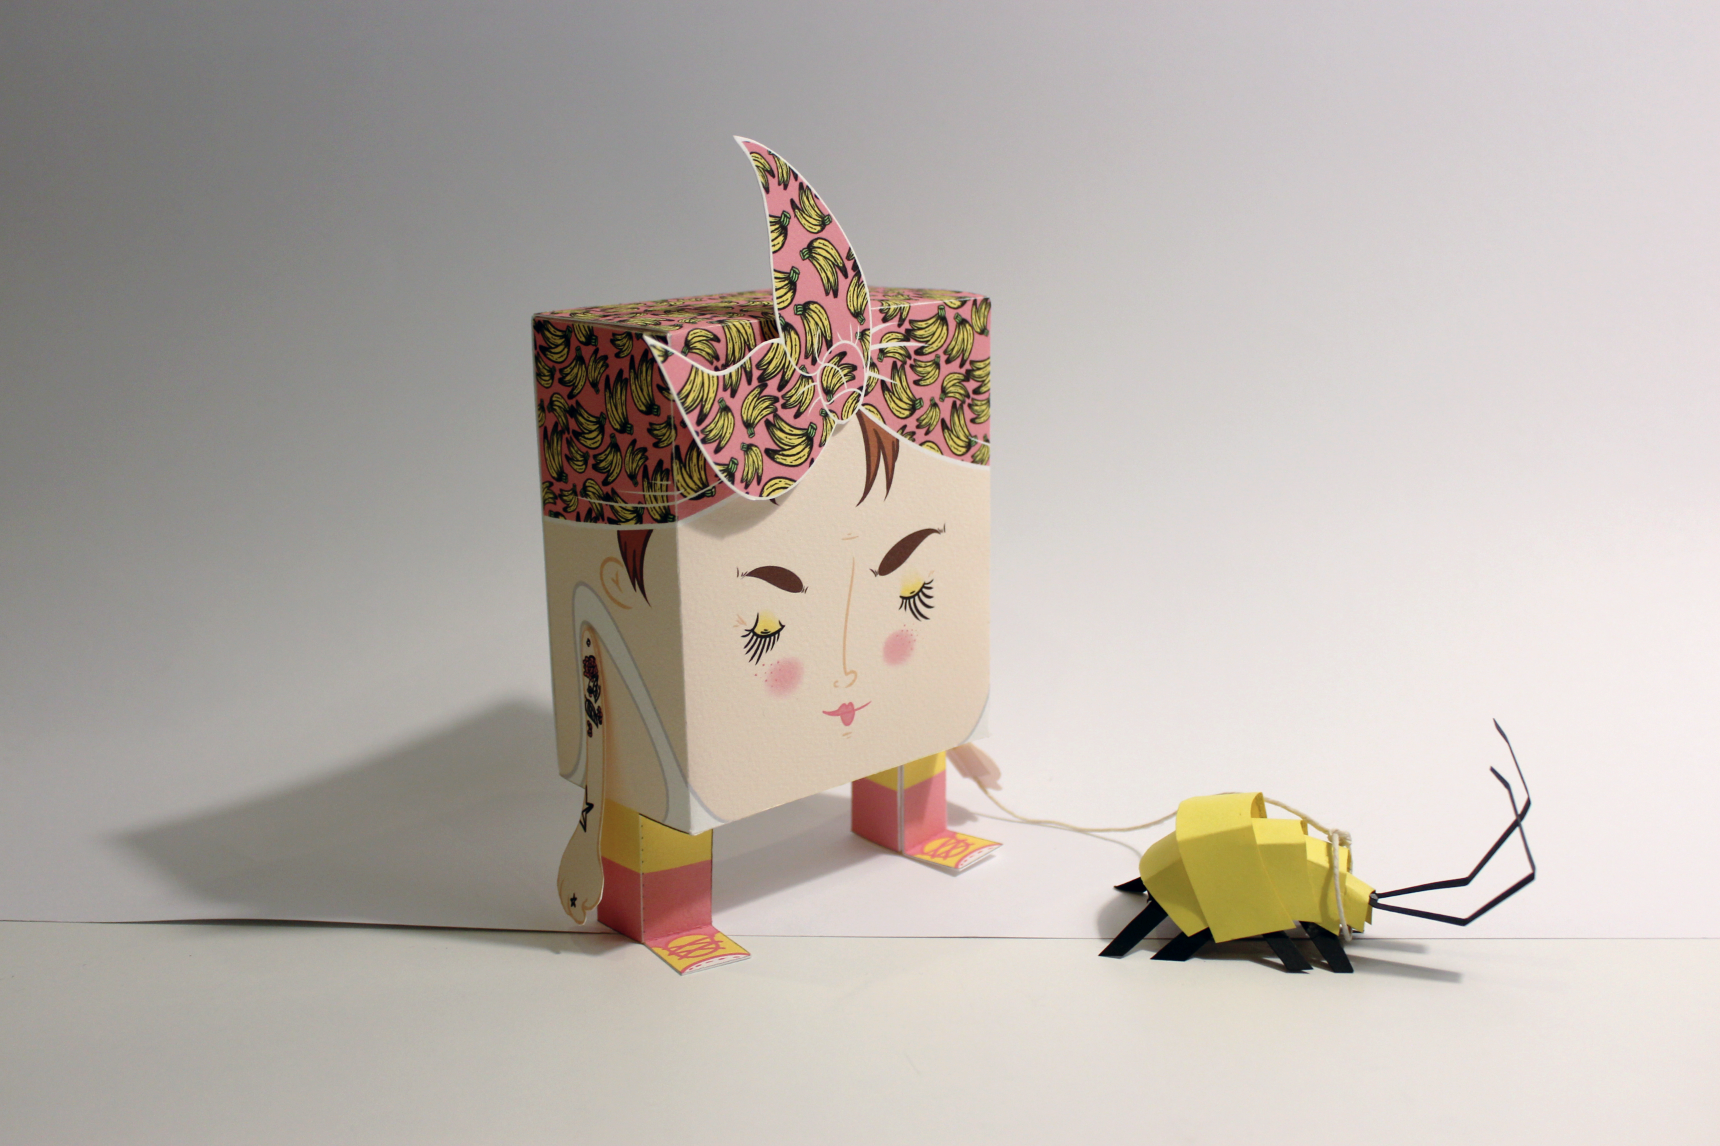 This is my finished little Dude-tte 'Marija' and her pet 'Cuddles'